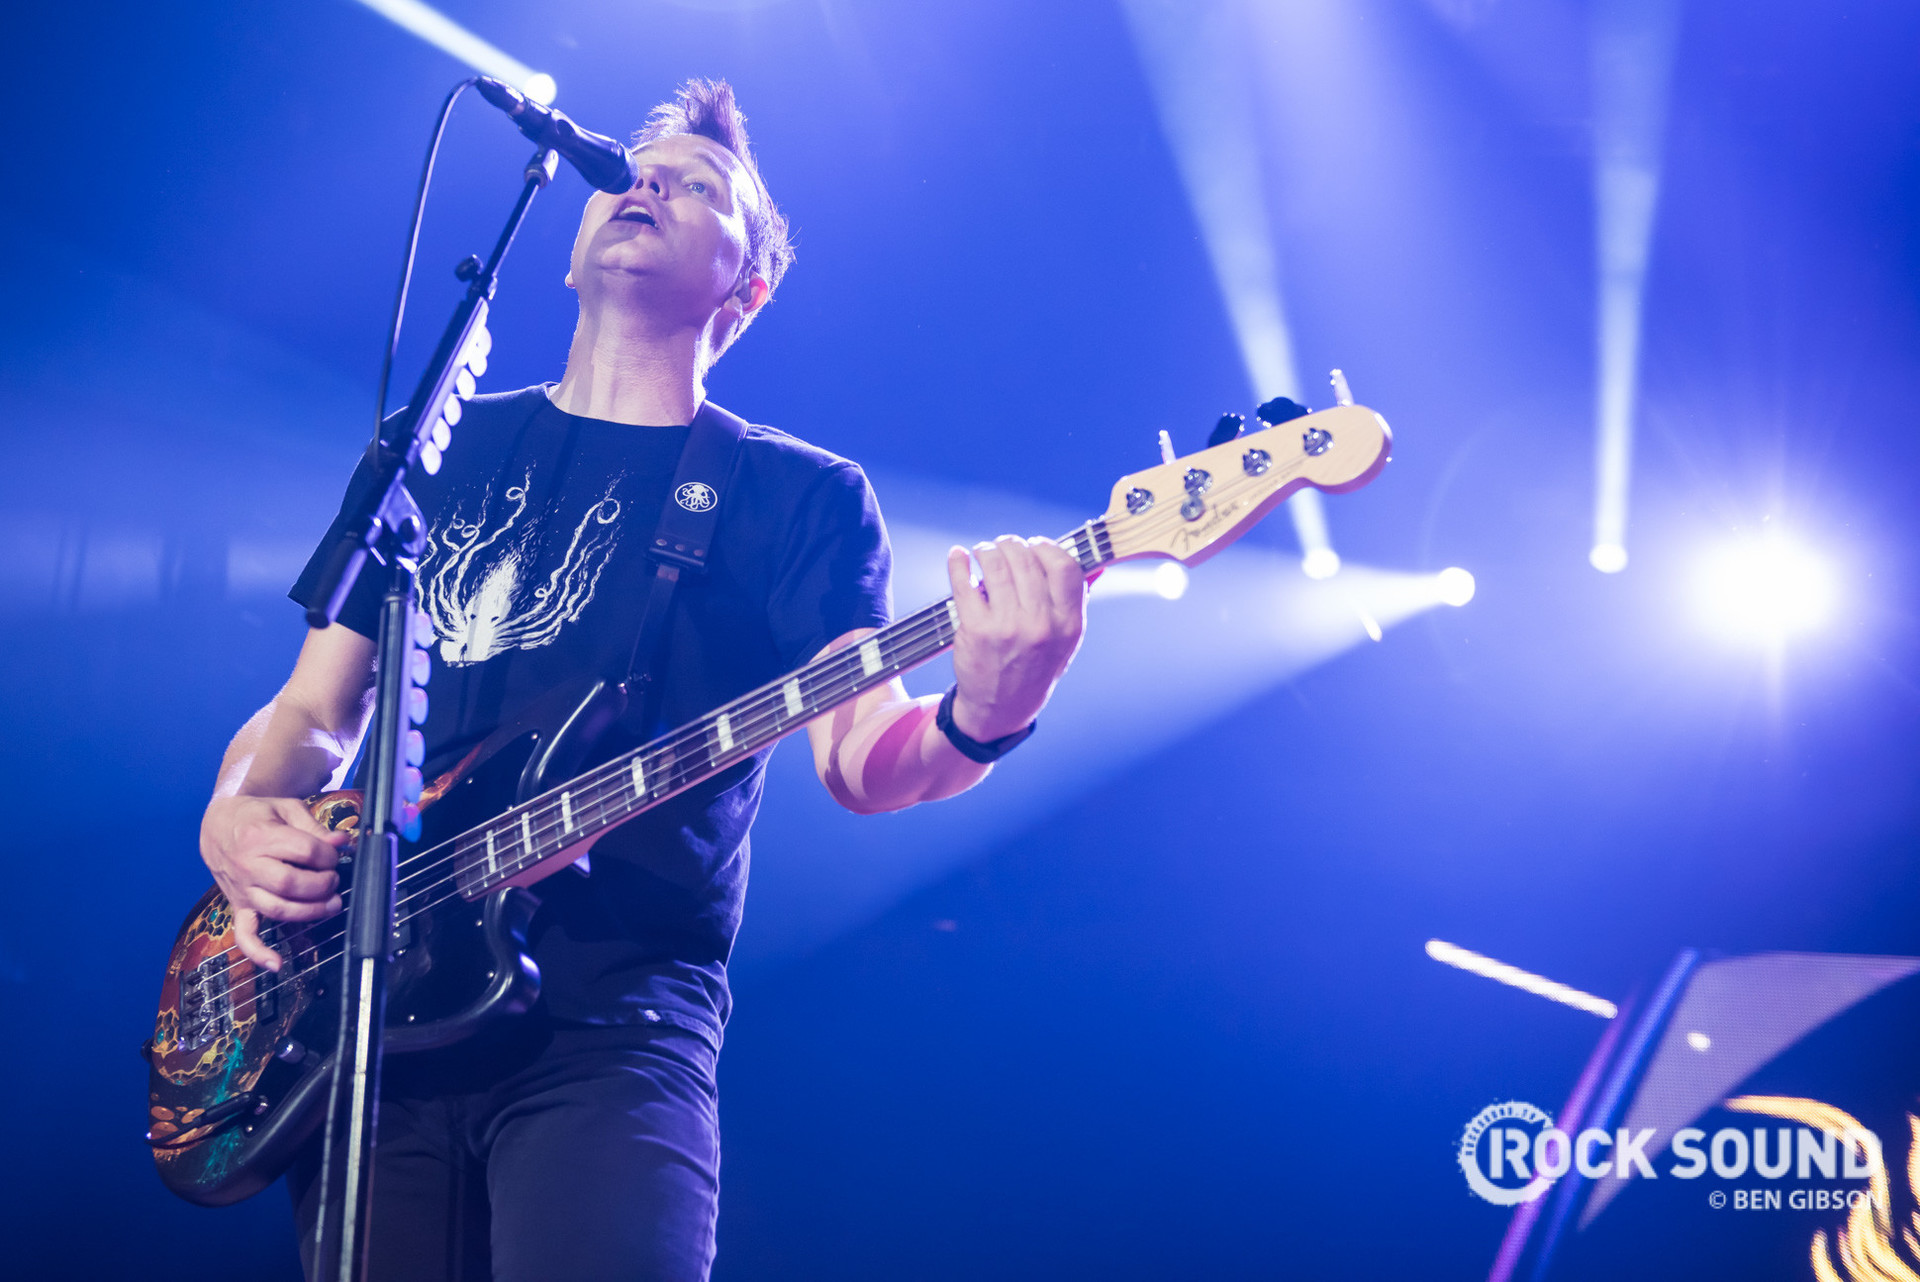 Blink 182 Tour 2020 Blink 182 Are Planning A 2020 European Tour   News   Rock Sound